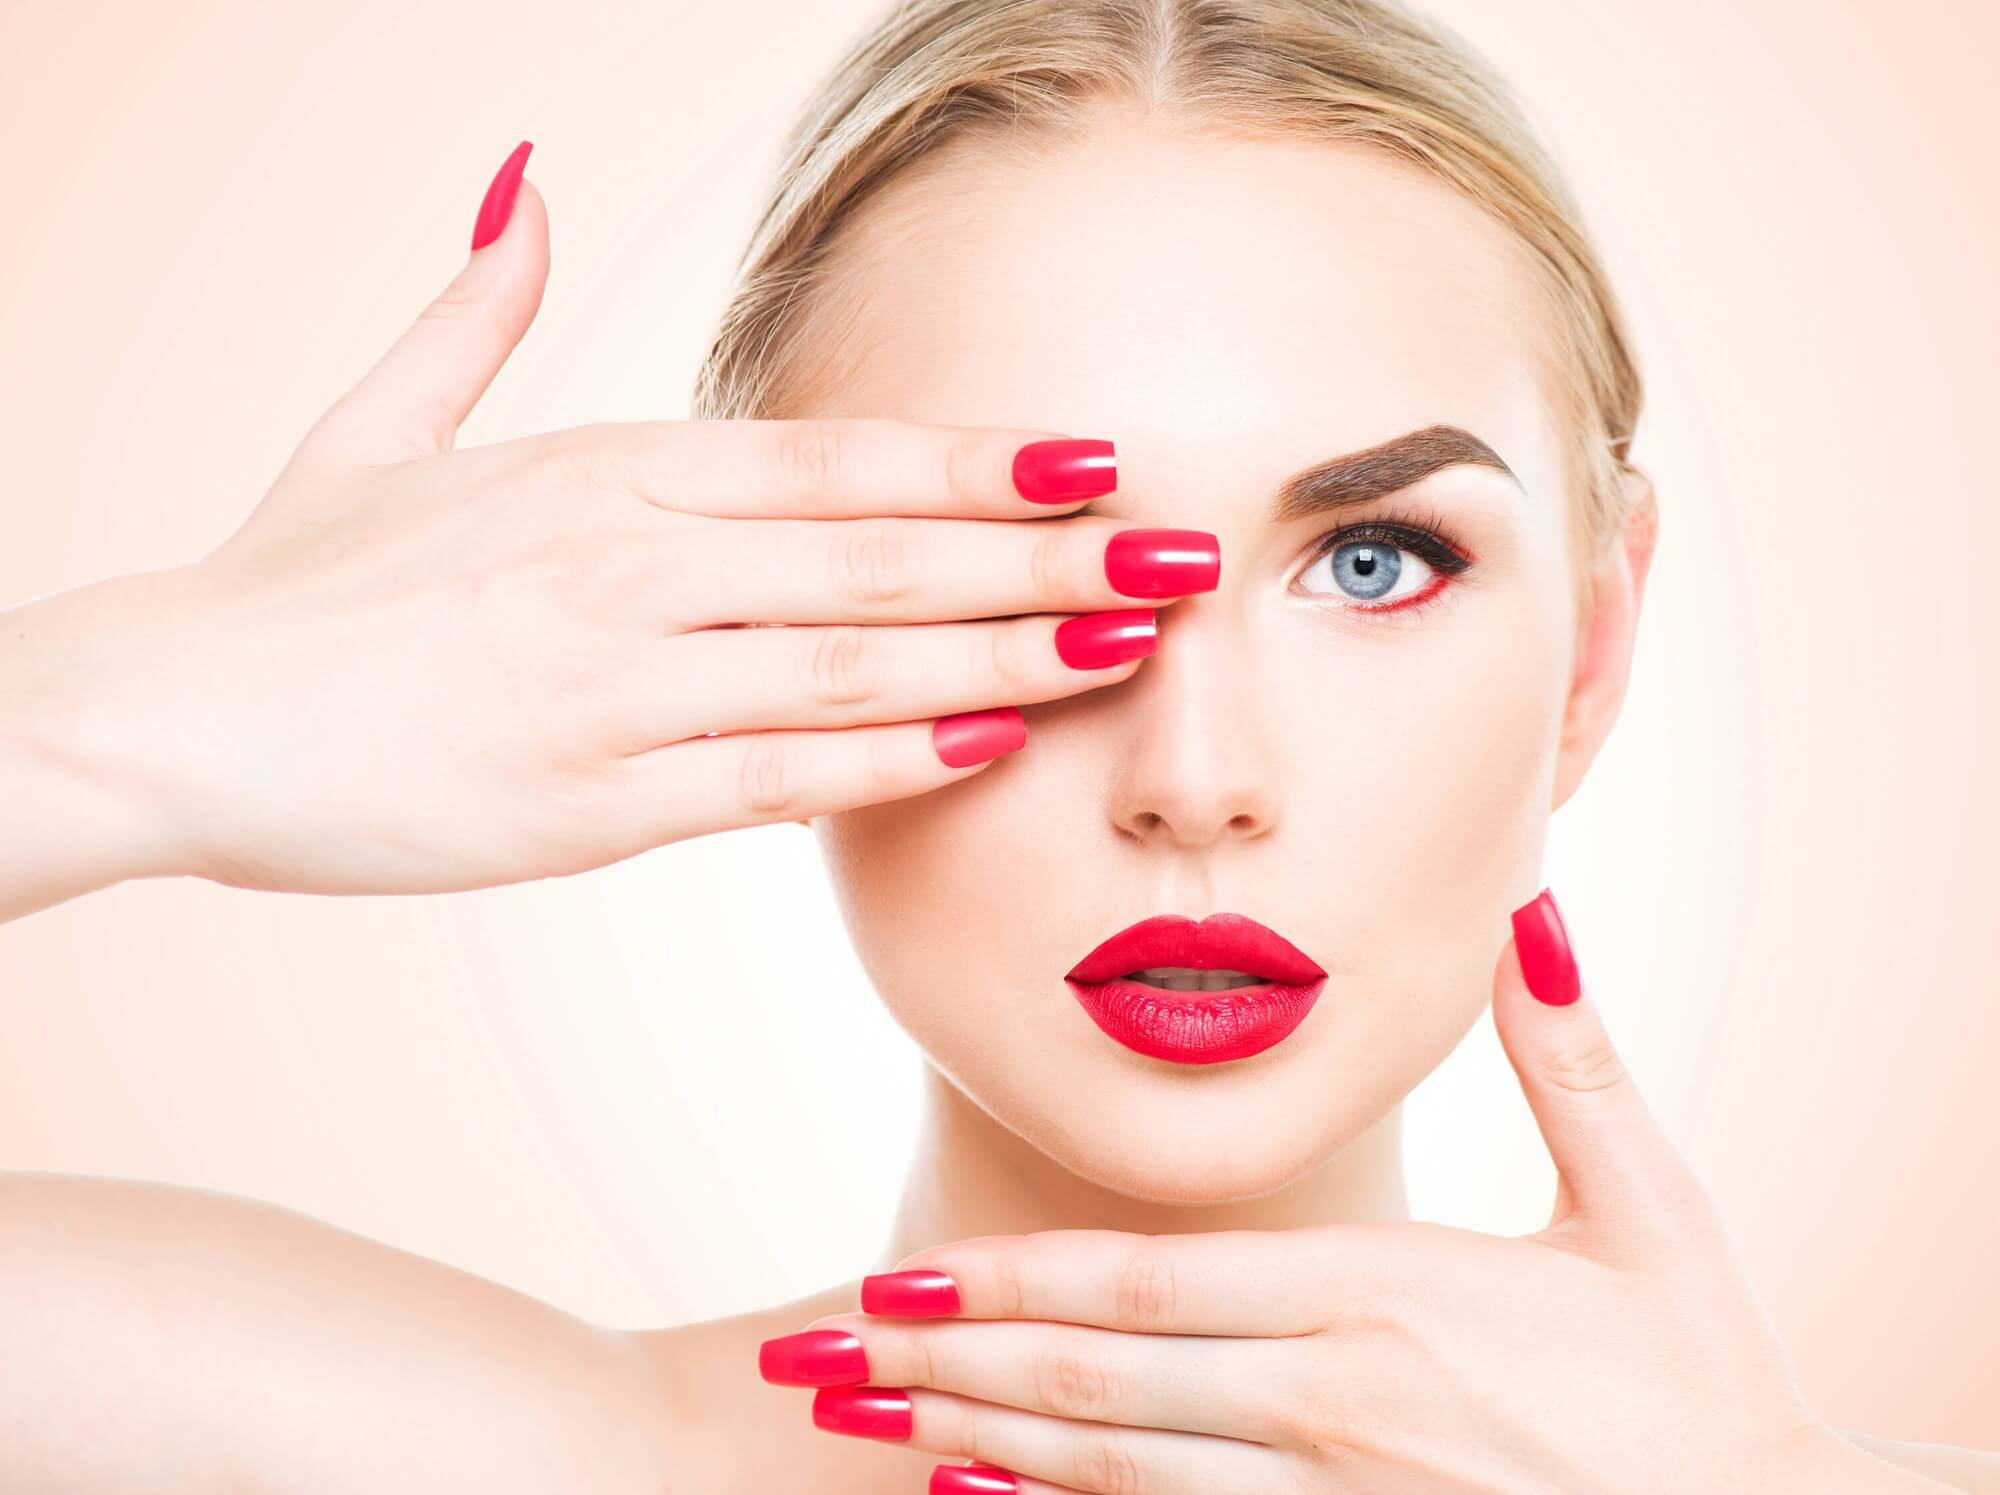 lady with matching red lipstick and nails